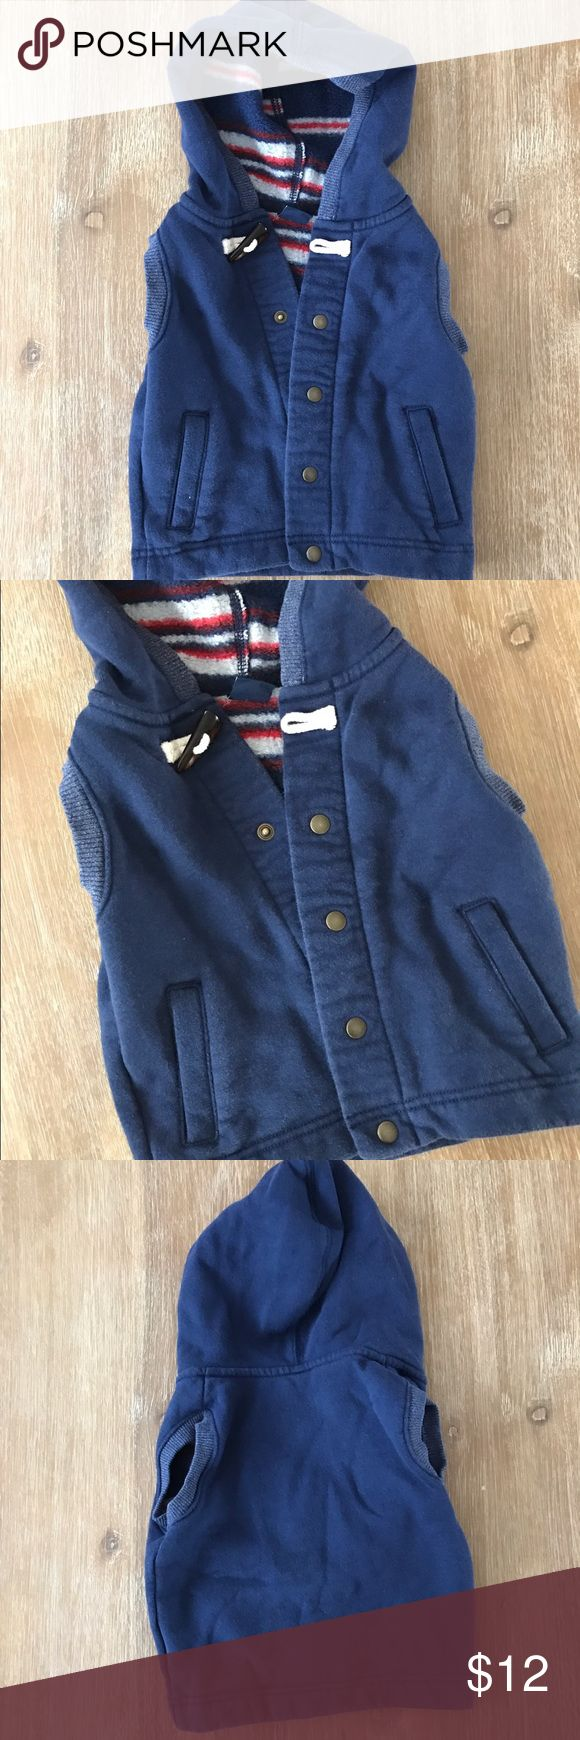 BOYS GAP Navy Blue Vest 6-12 Months Cozy navy blue vest with hood. Pockets. Snaps. GAP. 6-12 months. Cute for boy or girl. OFFERS WELCOME | BUNDLE FOR DISCOUNT | MORE ITEMS COMING GAP Jackets & Coats Vests